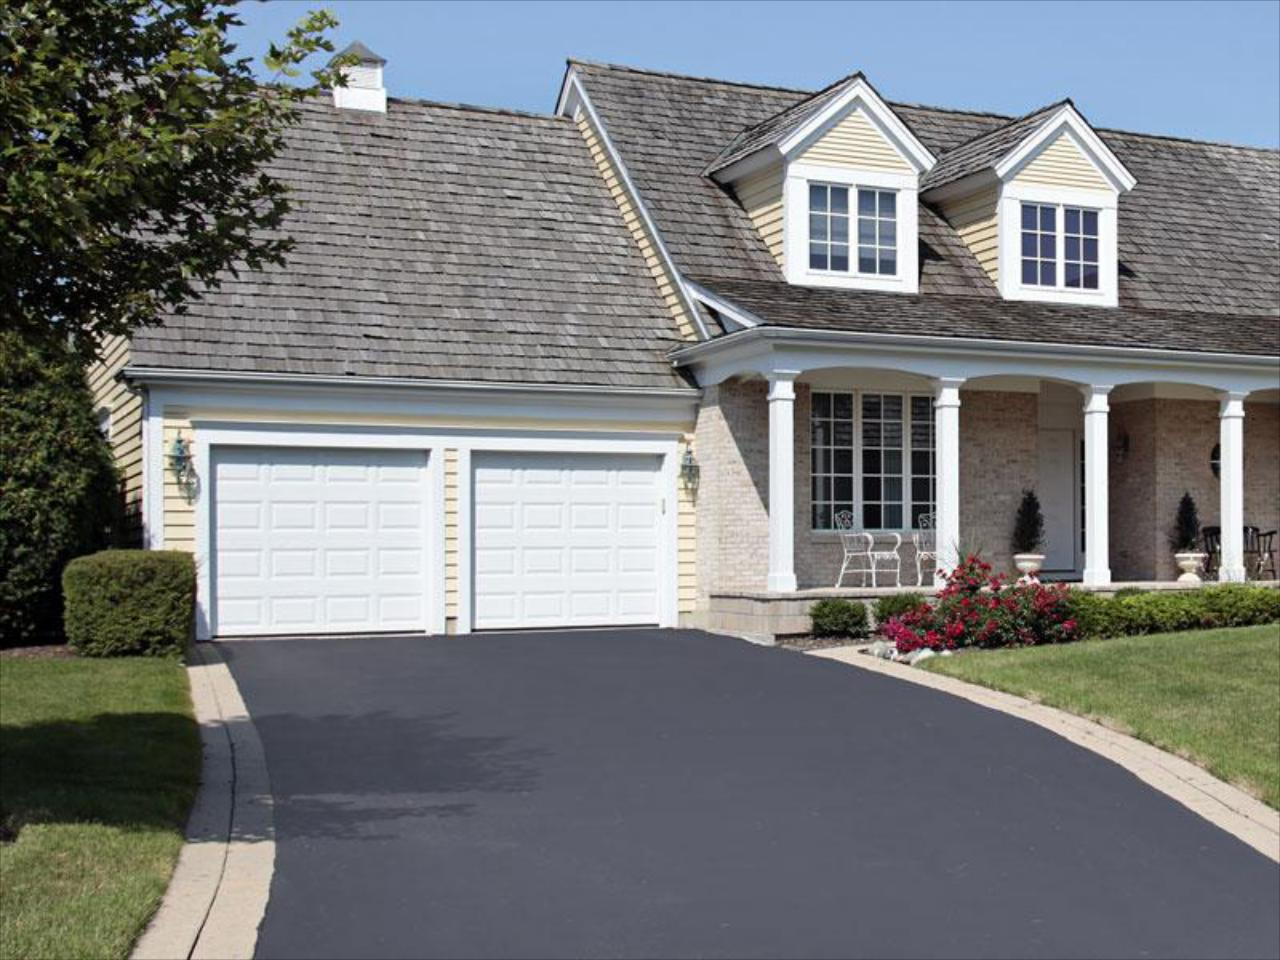 Keep your property in top form with our professional driveway paving services